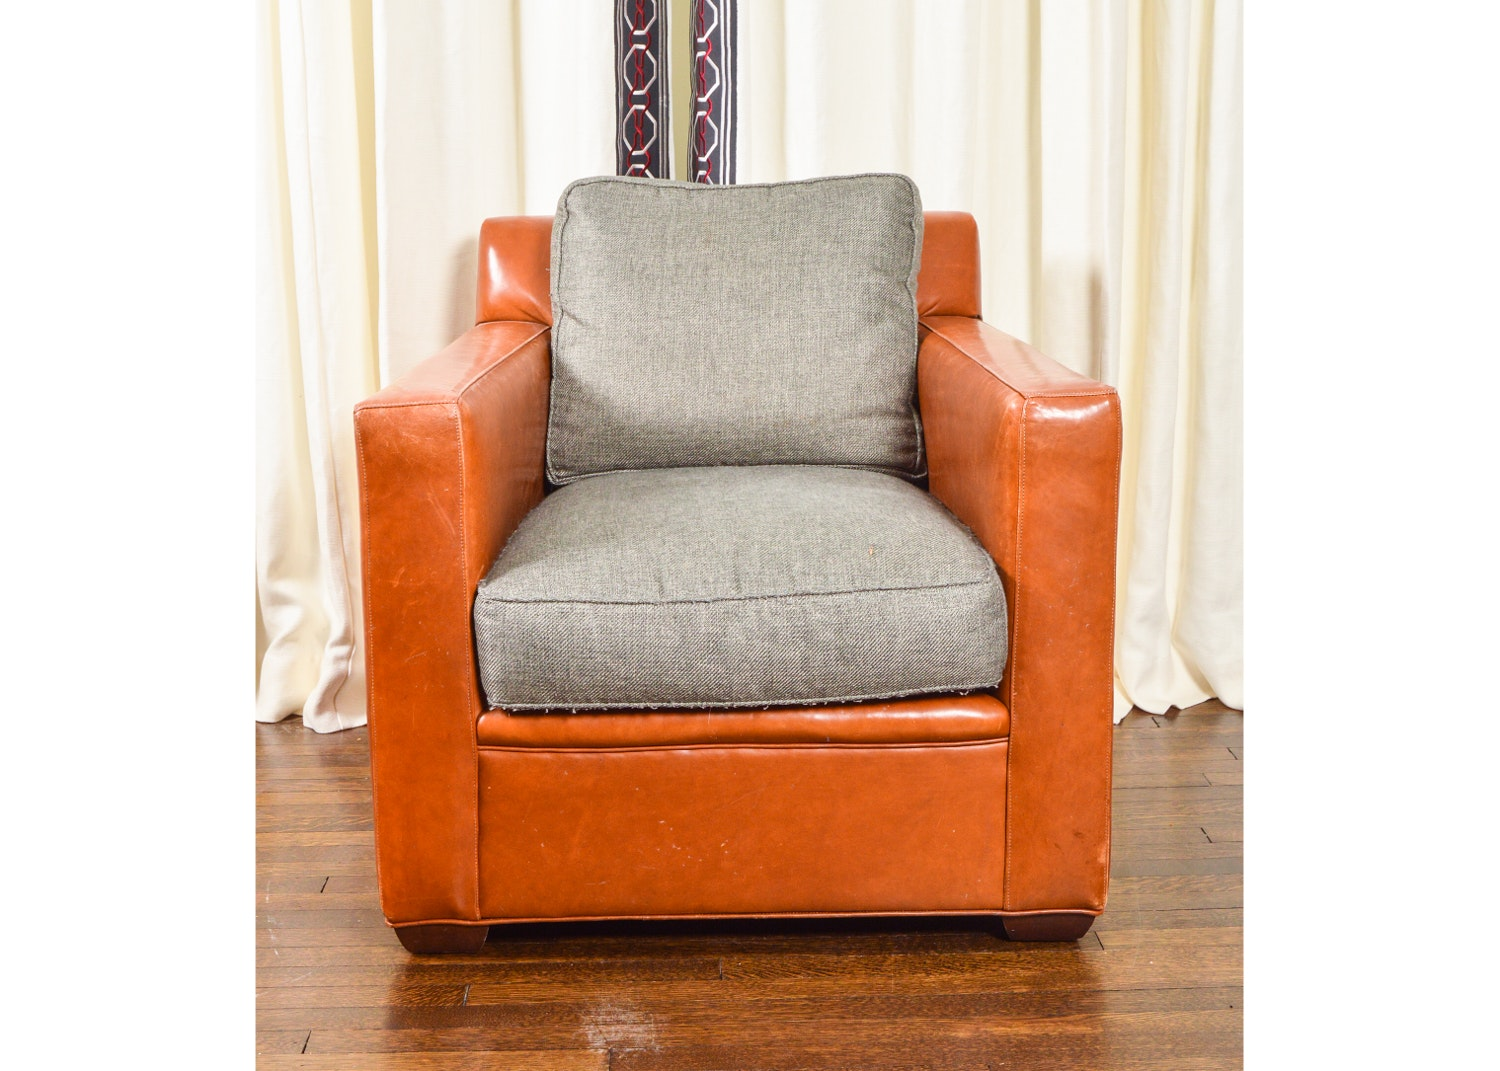 Leather and Gray Linen Upholstered Club Chair by Vanguard